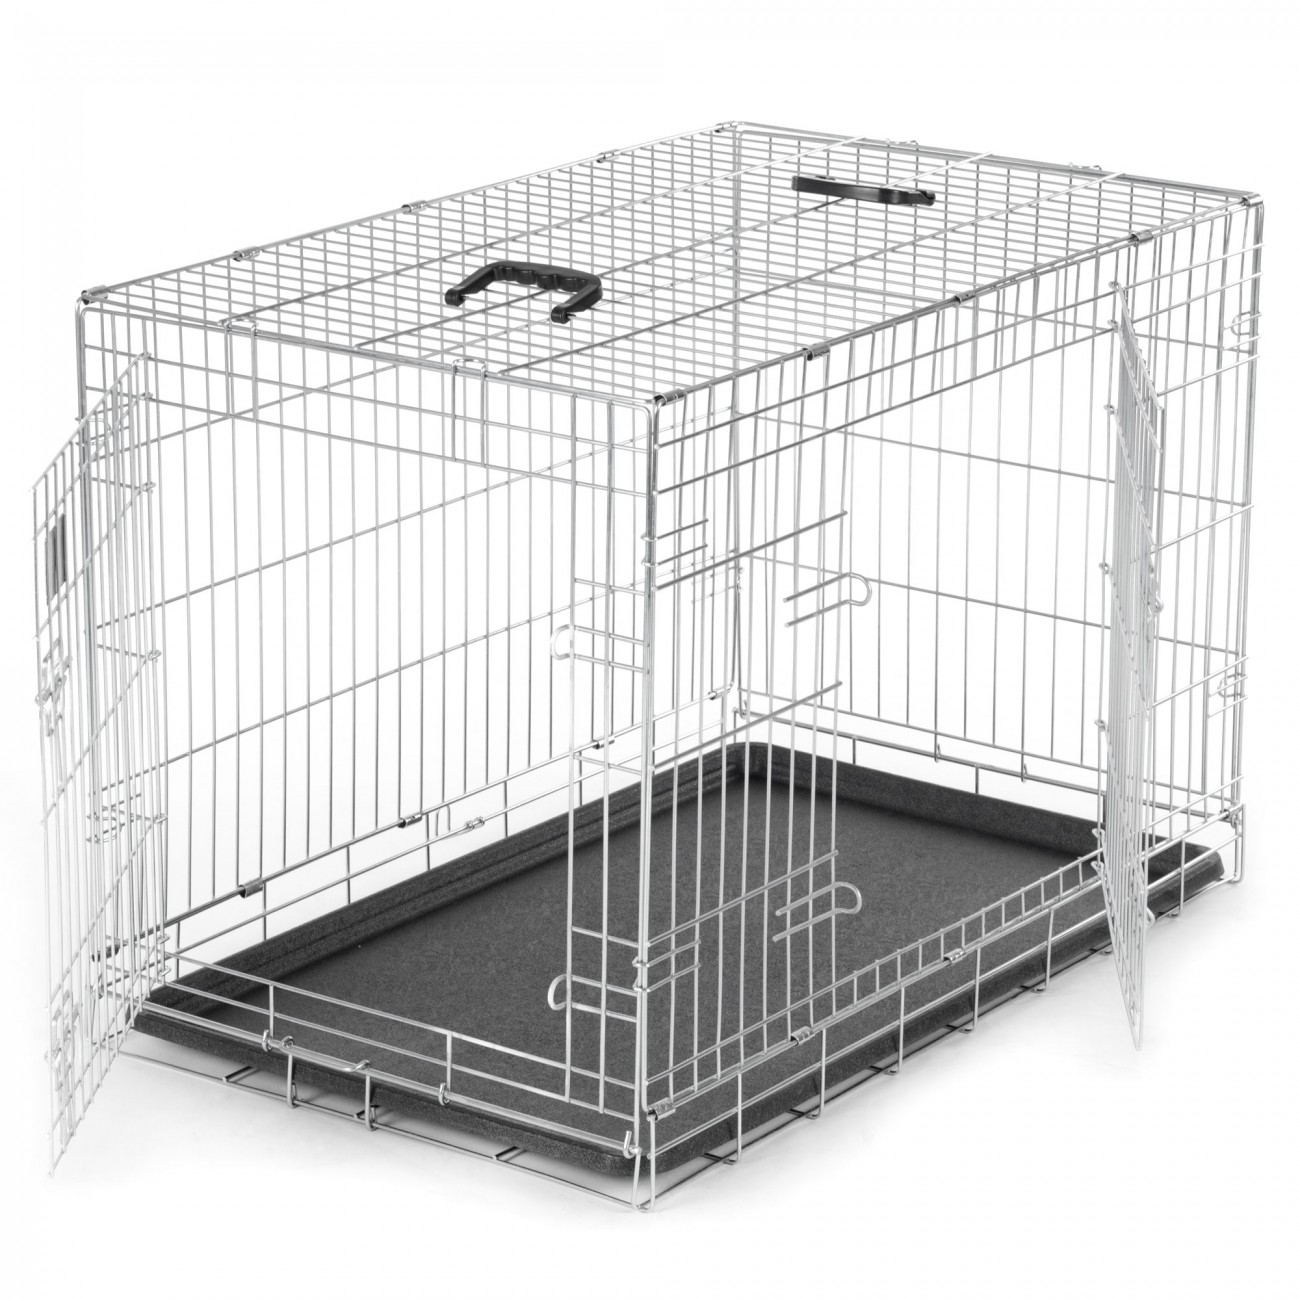 cage pour chiens caisse box de transport cage de animaux chiots pliable m tal l ebay. Black Bedroom Furniture Sets. Home Design Ideas